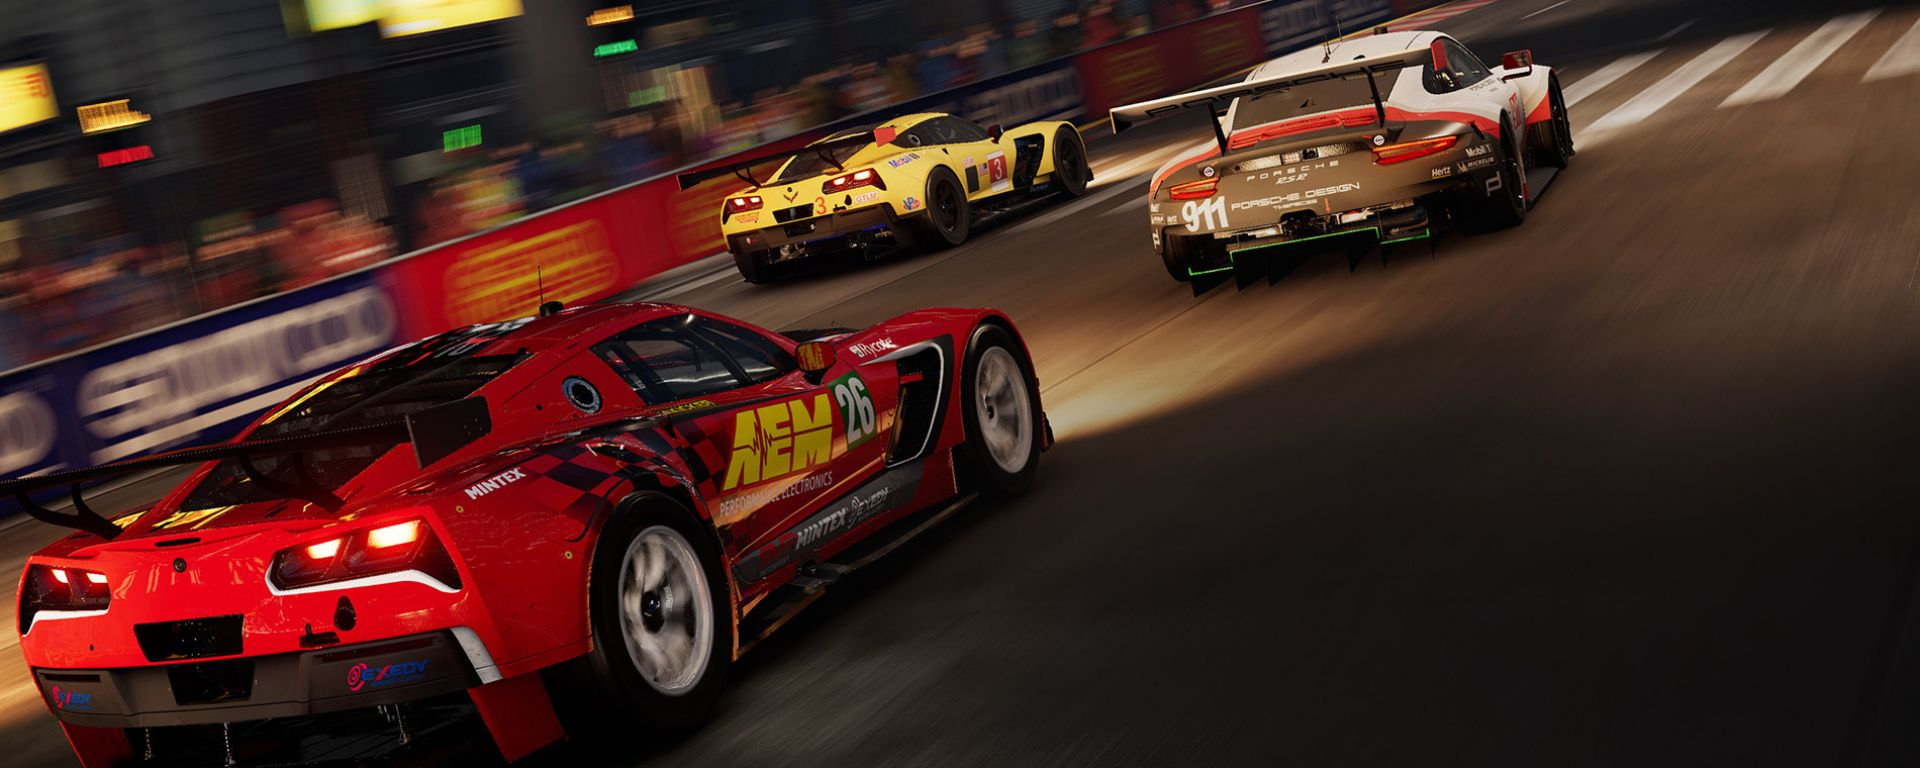 GRID (PC, Xbox One, PlayStation 4), in uscita l'11 ottobre